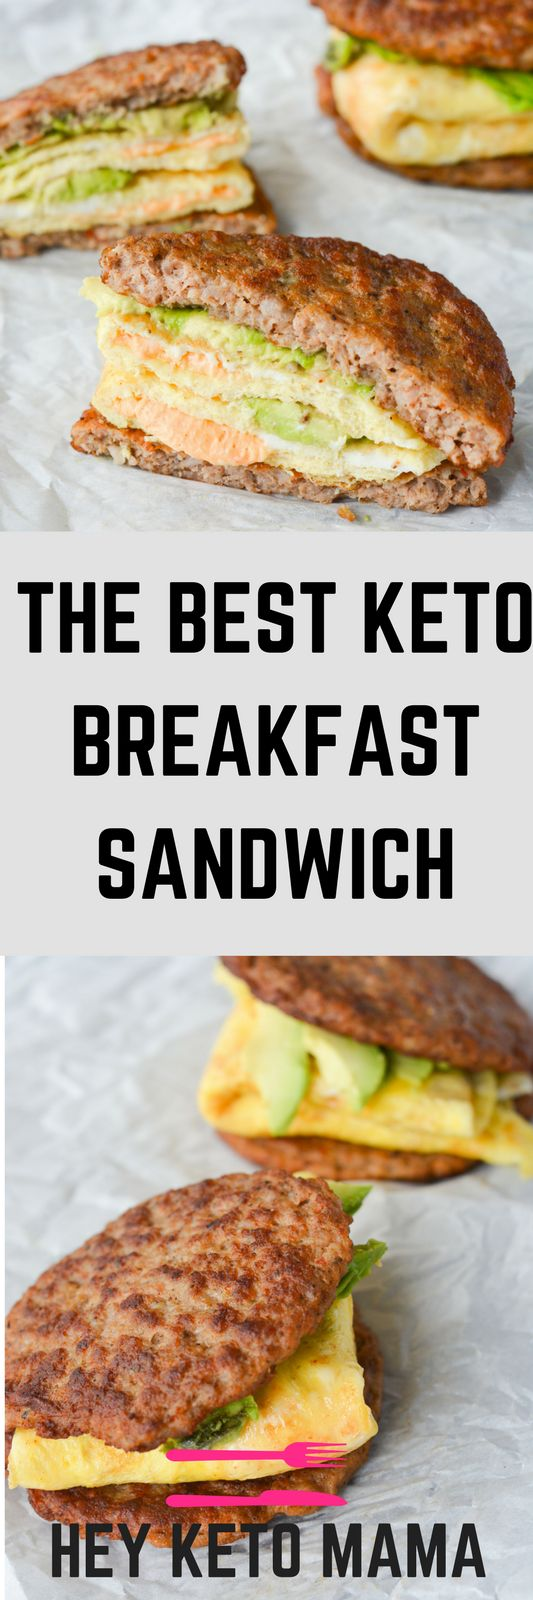 MY FAVORITE KETO BREAKFAST SANDWICH